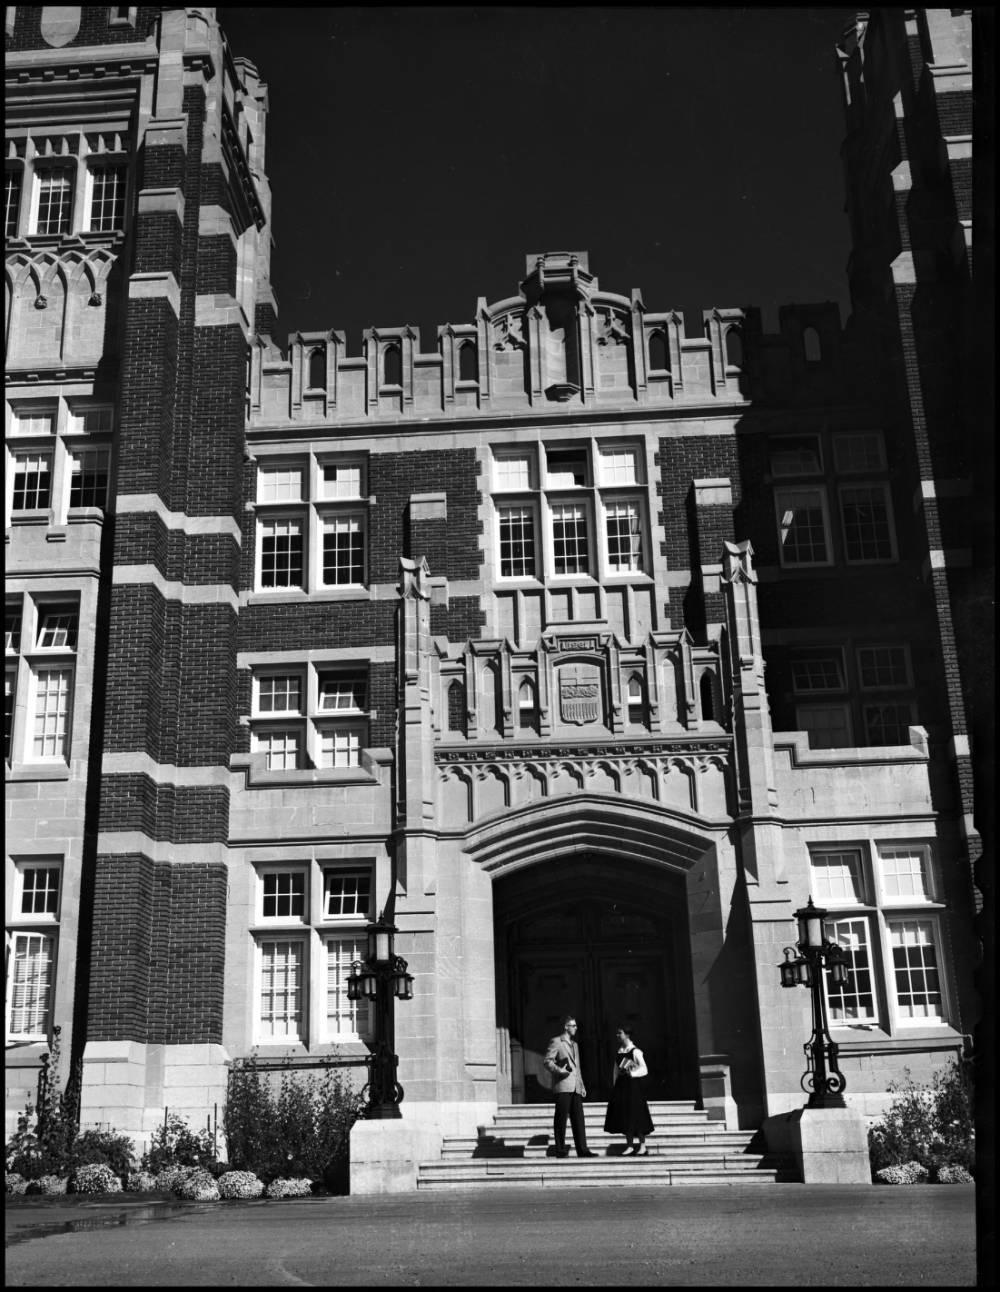 The main entrance of Heritage Hall (now part of SAIT campus) at the start of the 1954 fall term at the Calgary branch of the University of Alberta